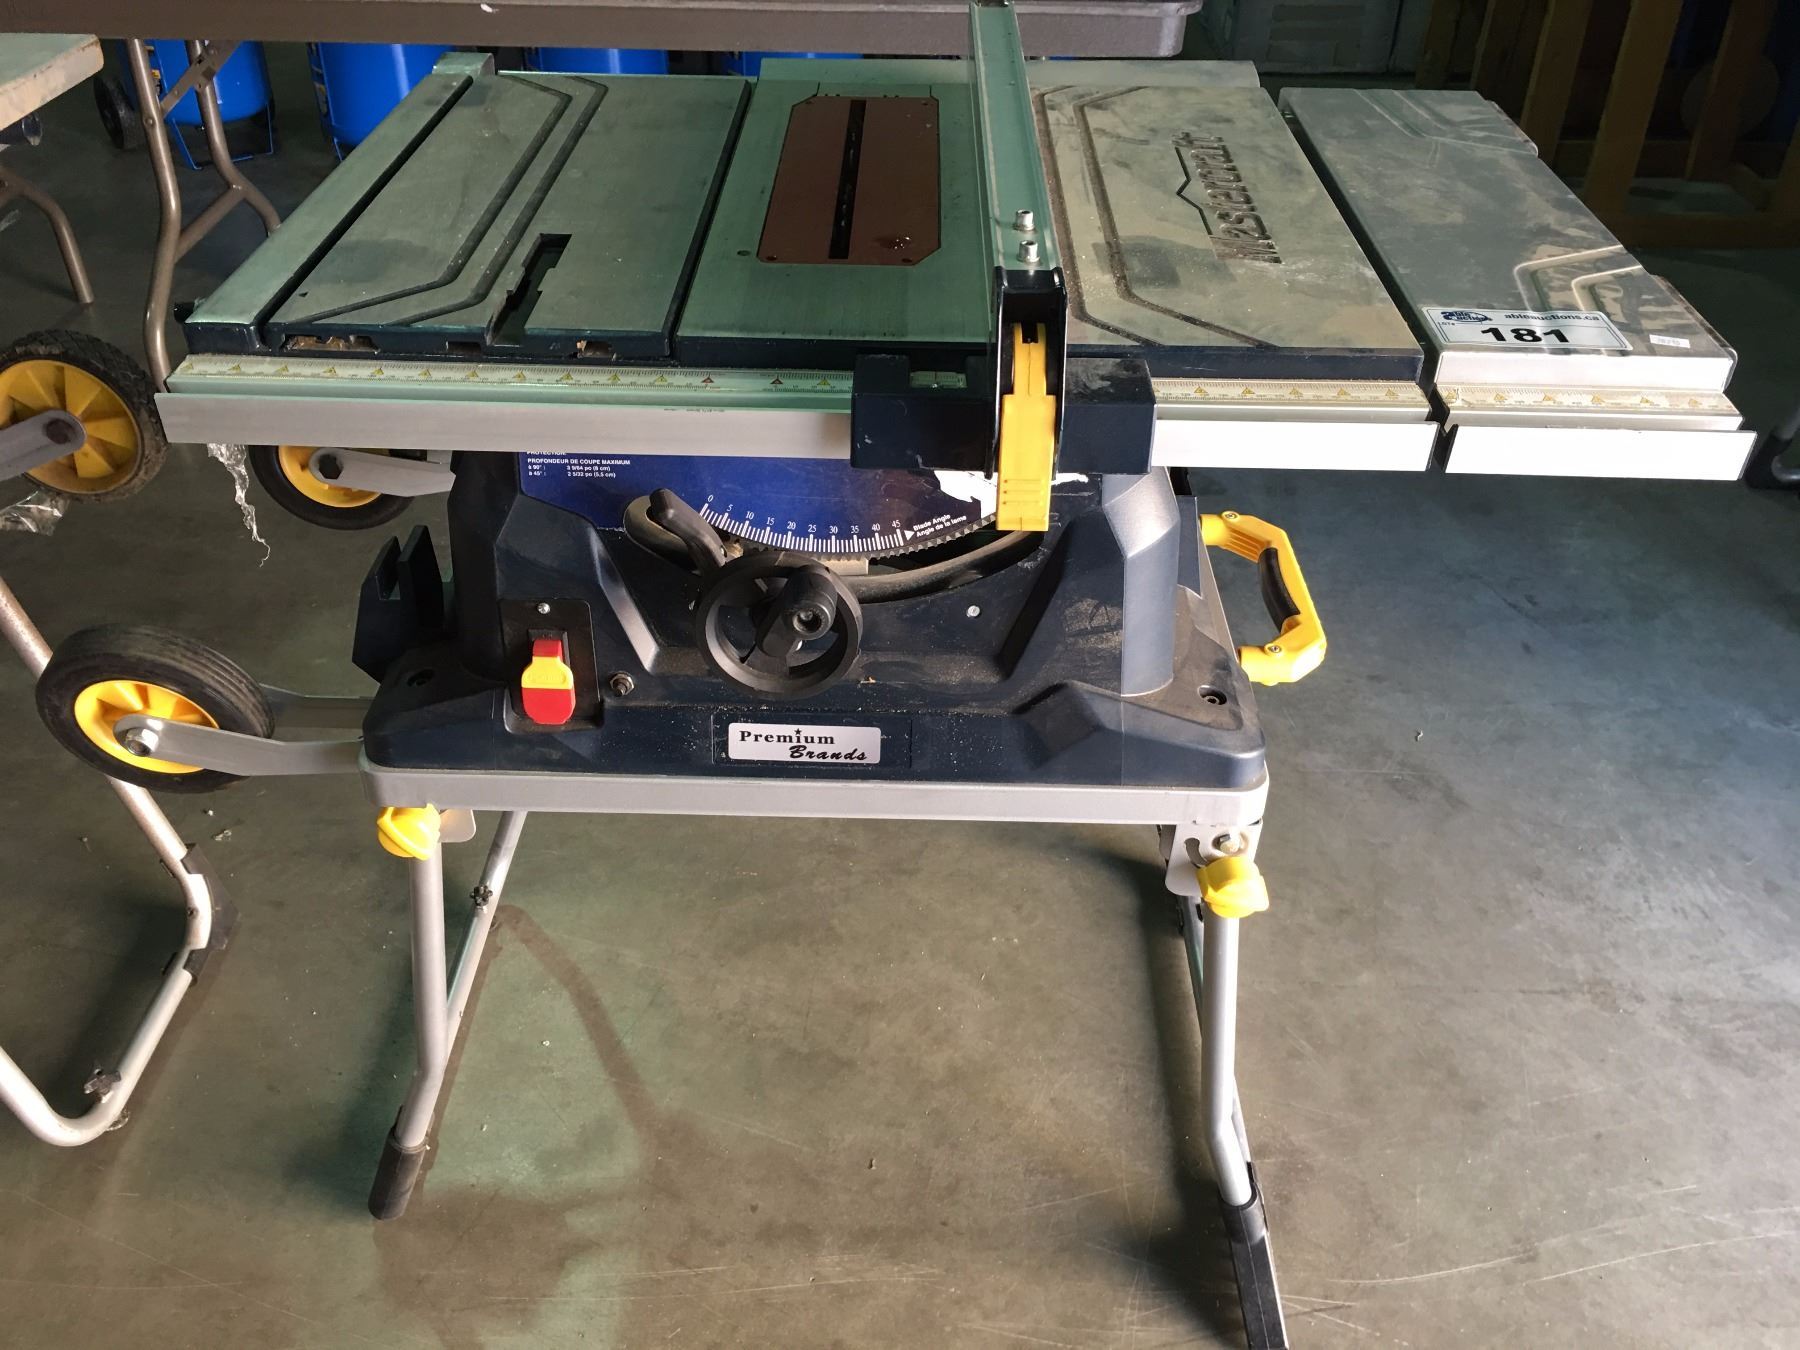 mastercraft 10 table saw with fold roll stand some parts mastercraft 10 inch table saw parts mastercraft 10 table saw diagram [ 1800 x 1350 Pixel ]